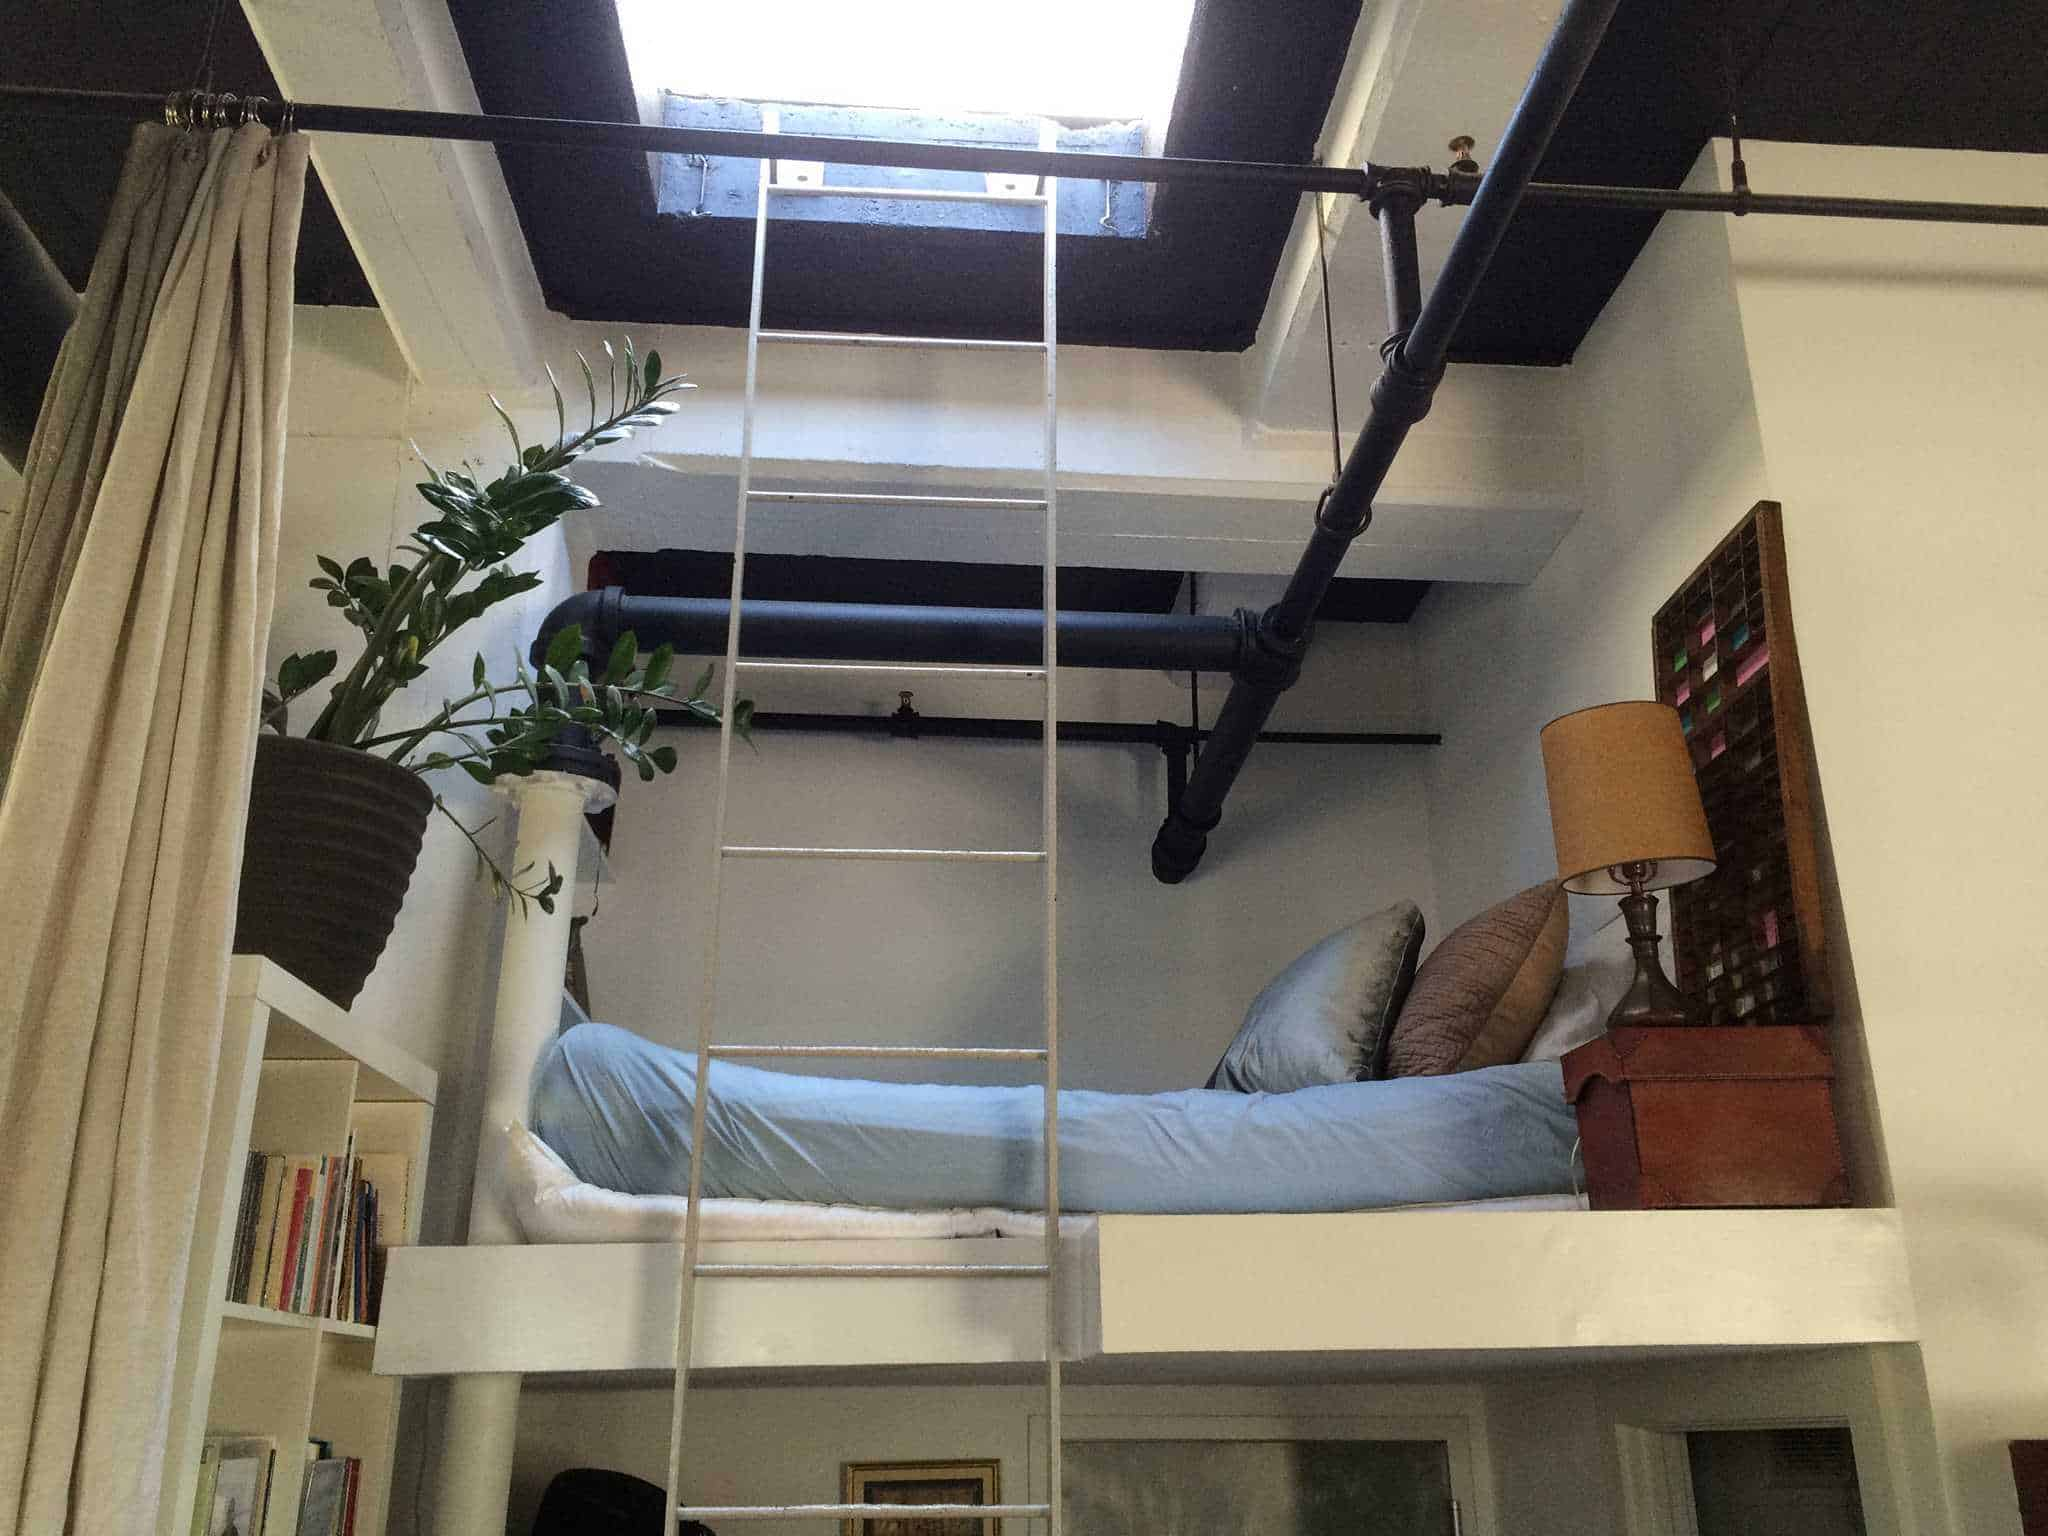 Hochbett im Loft in Williamsburg, York